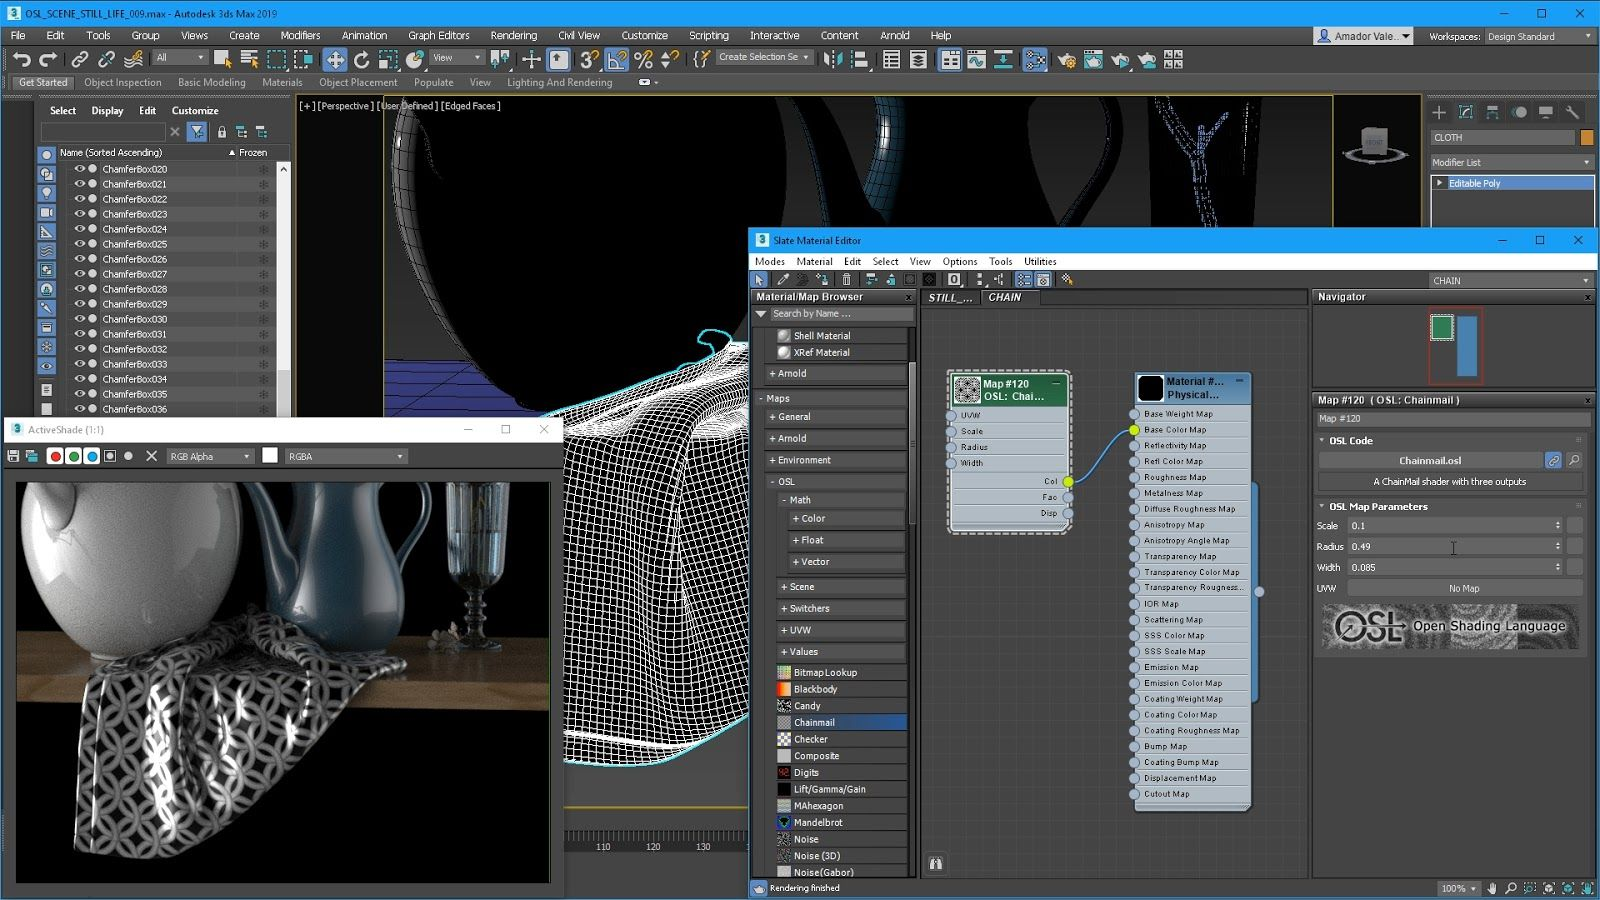 3ds Max 2019 OSL Map and Open Shading -الجديد في أتوديسك ماكس 2019 - What's New in 3ds Max 2019